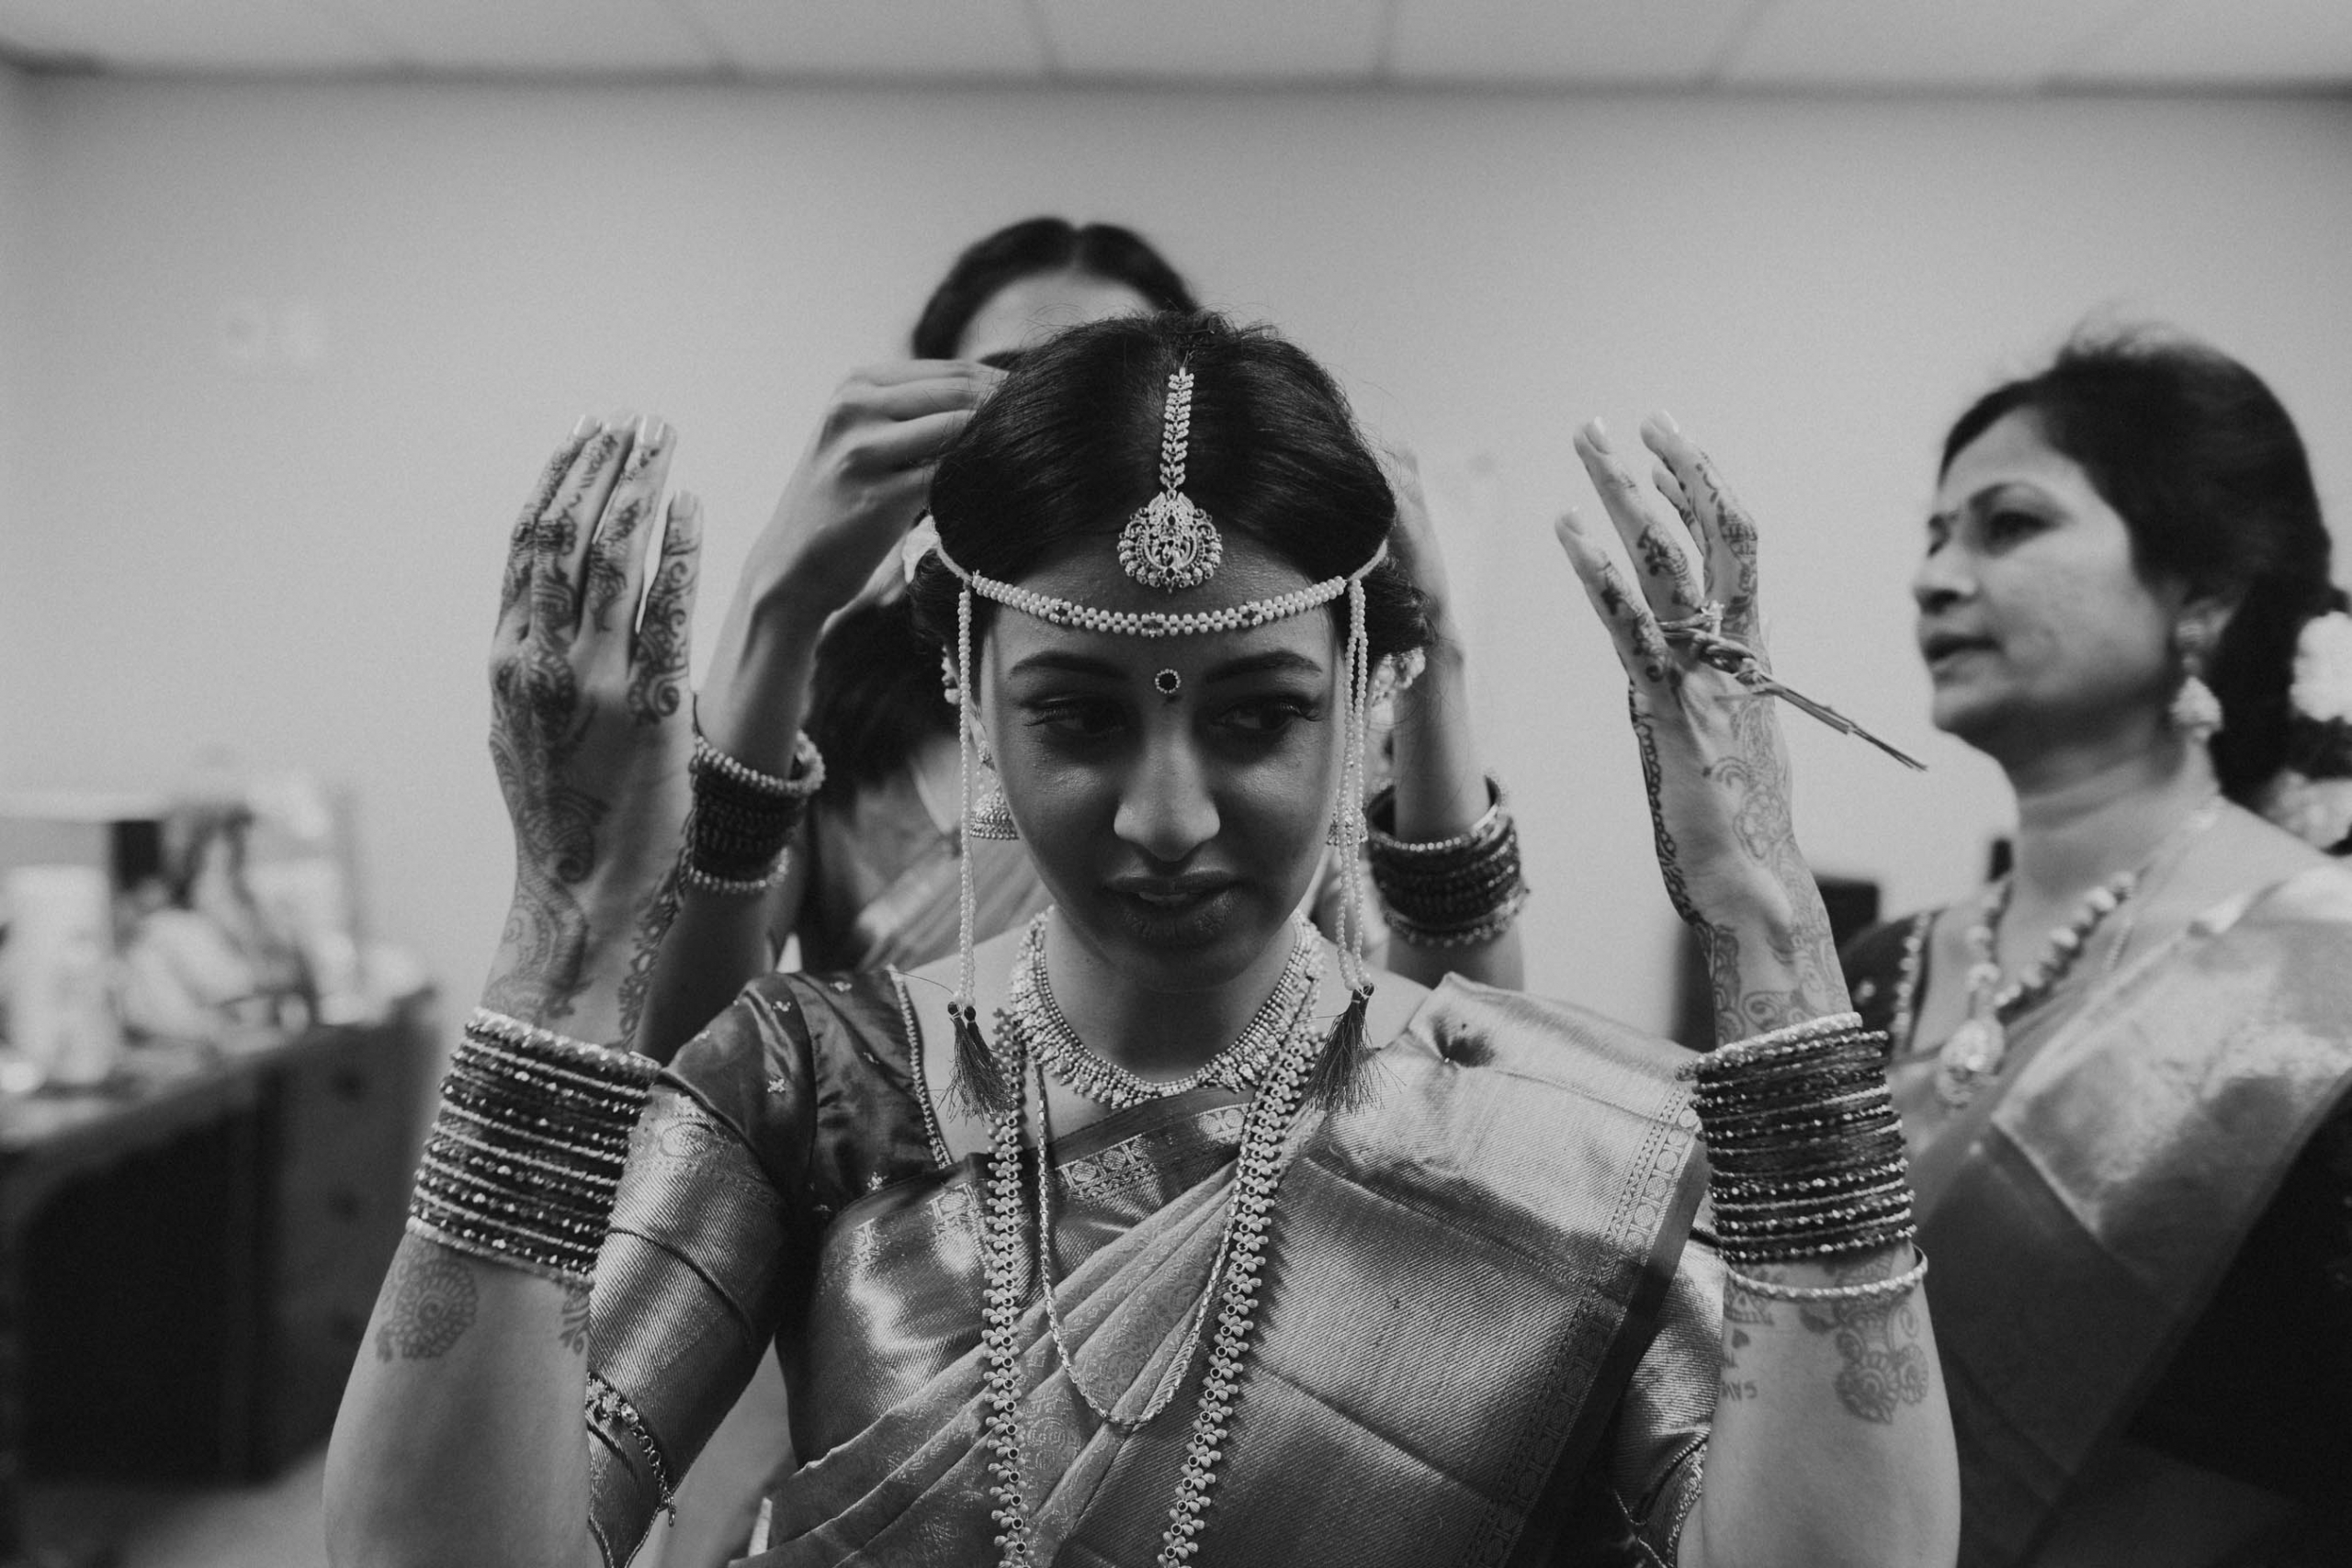 Indian bride, Shilpa wore a traditional kanchipuram saree for her Hindu wedding ceremony in Auckland, New Zealand.